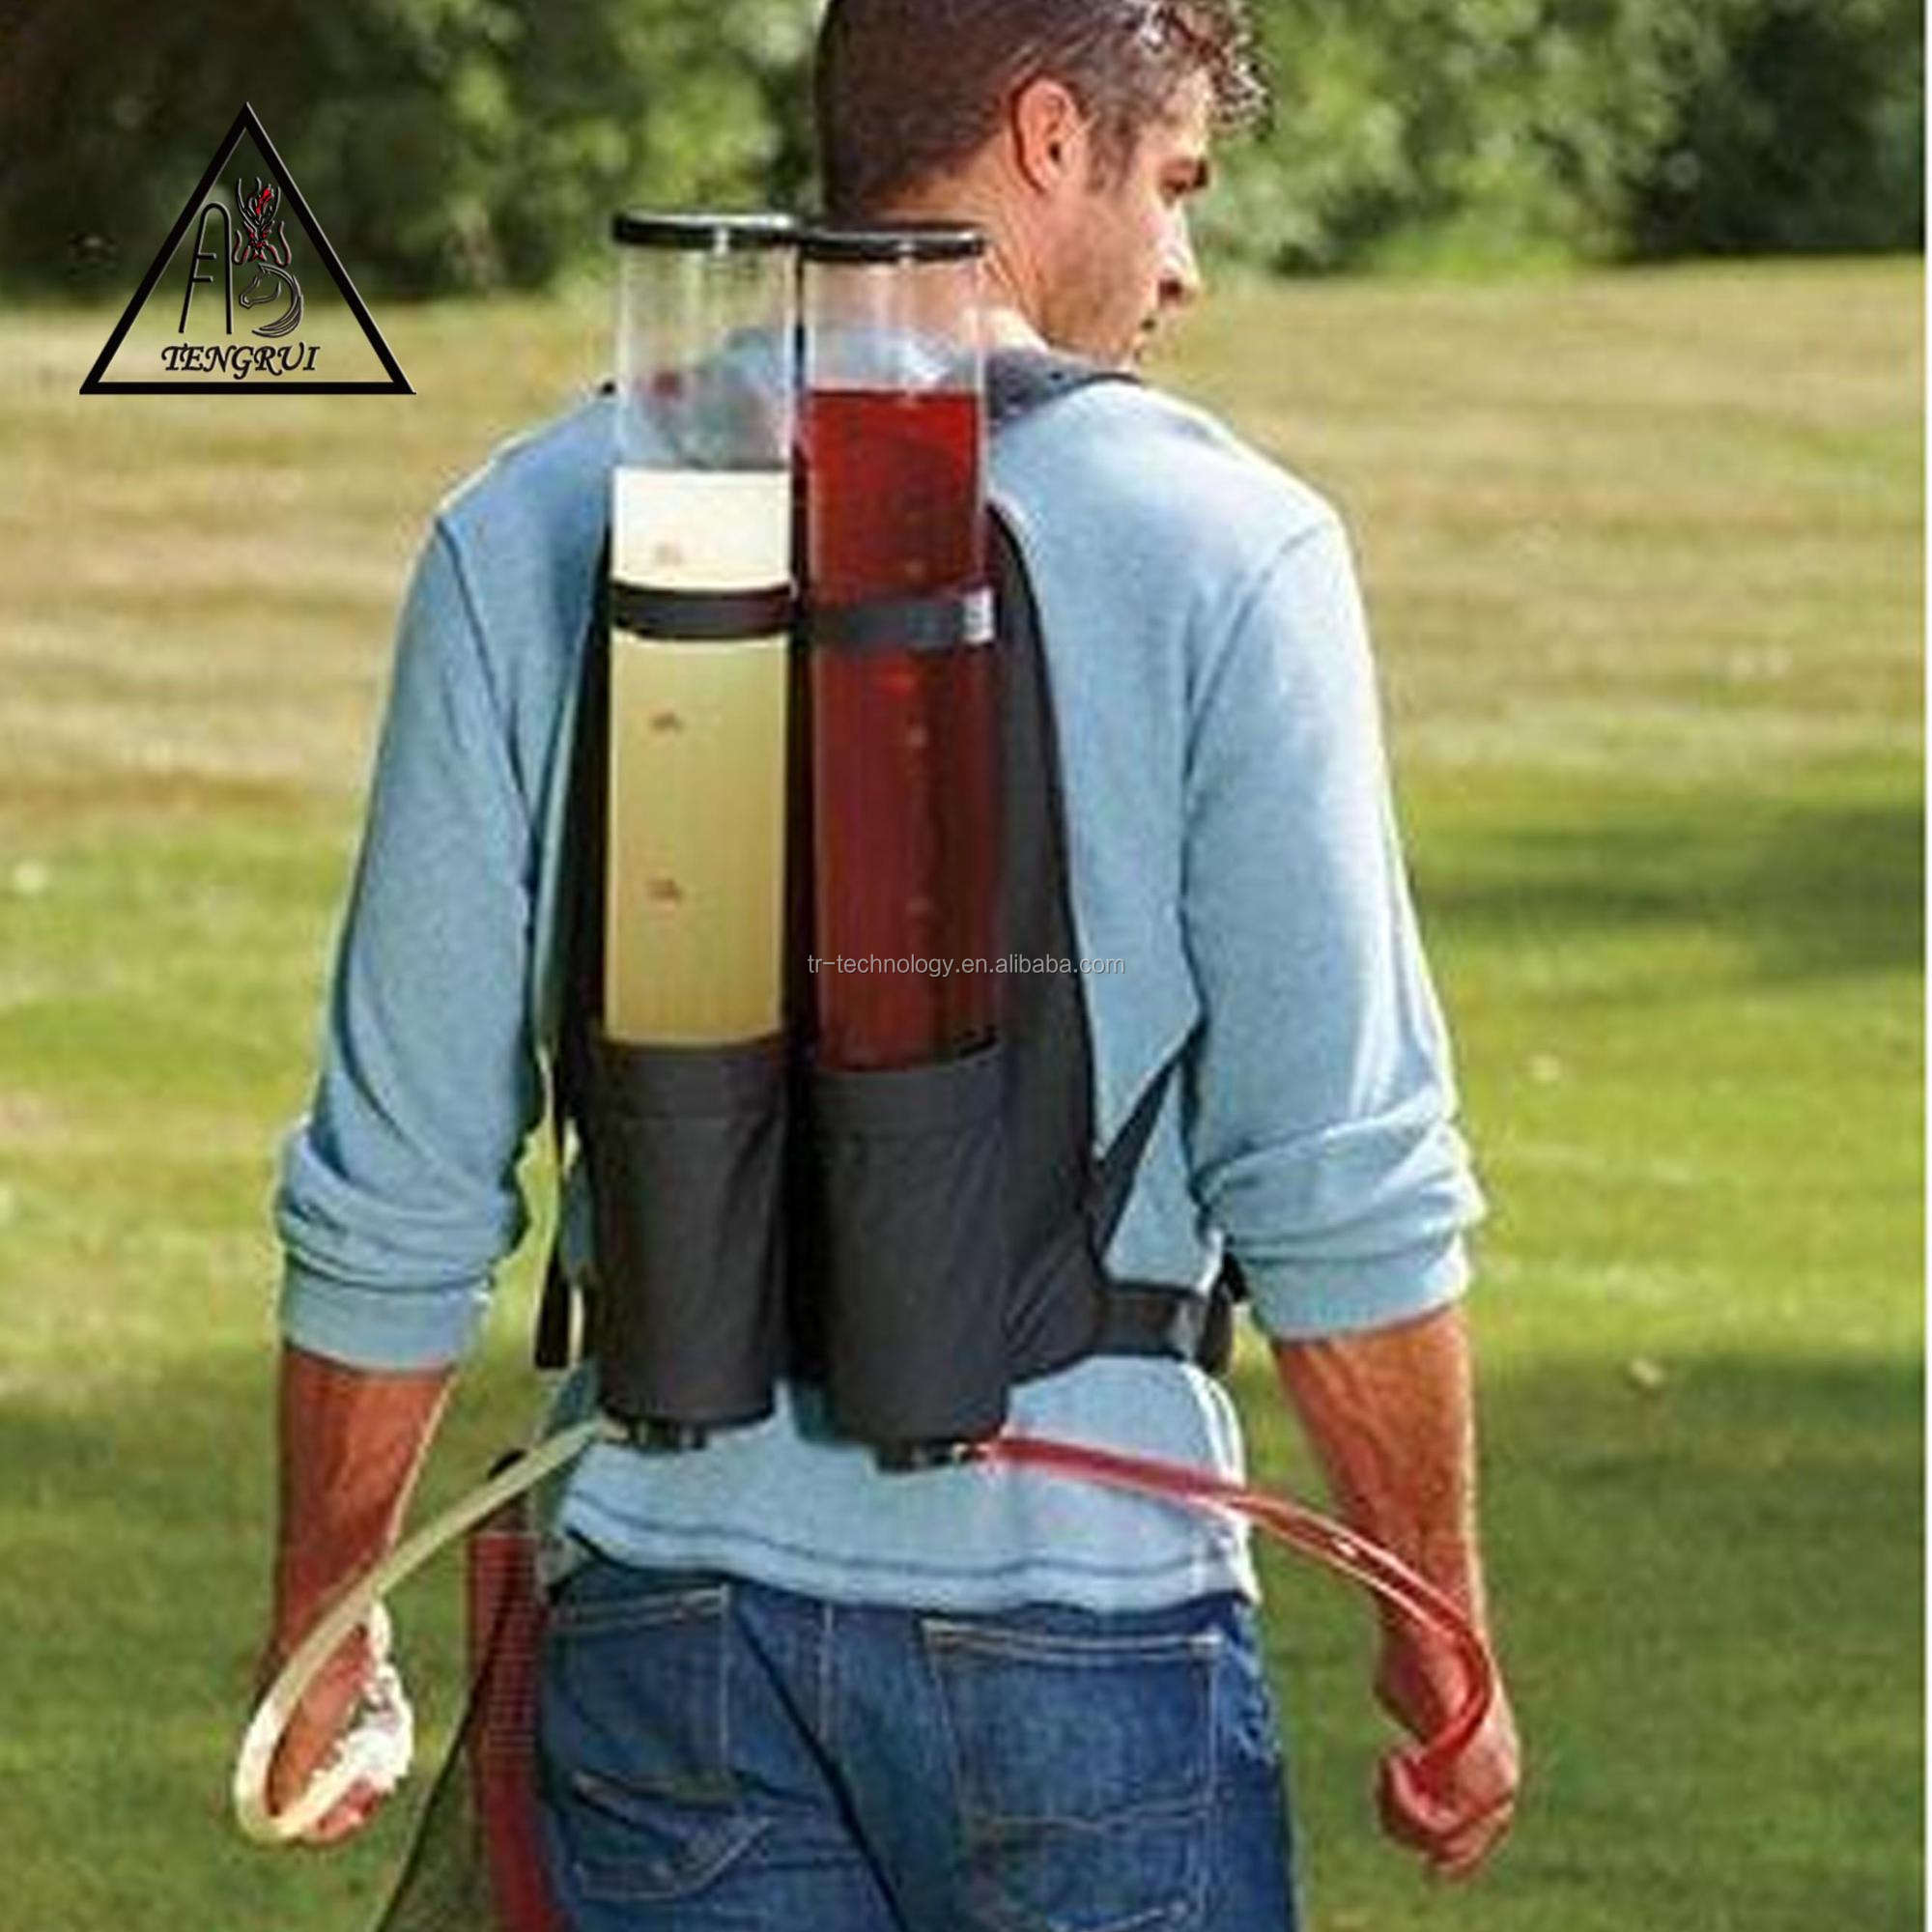 Hiking Camping Backpack soft drink/liquor pump dispenser with ice tube for party